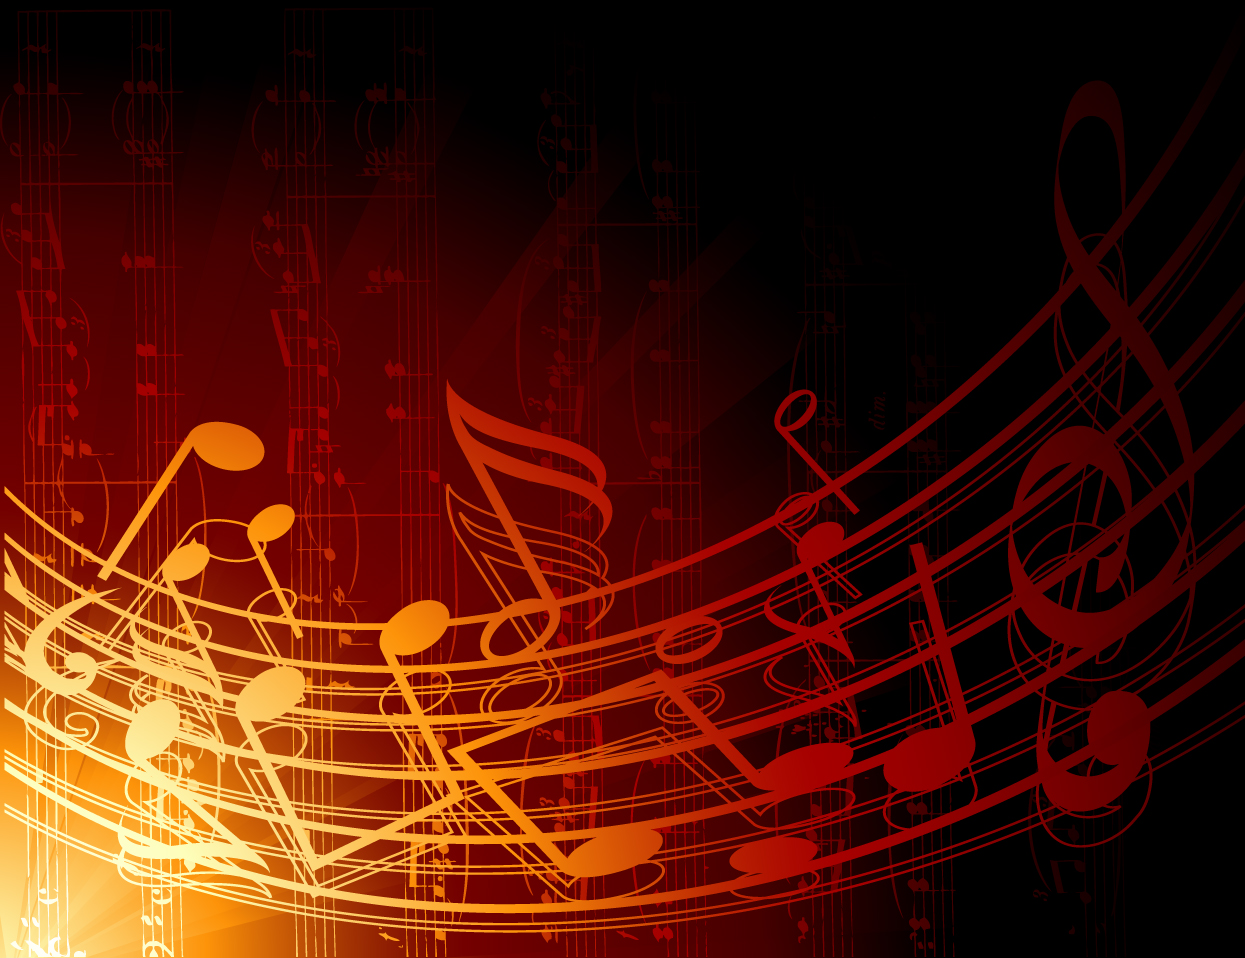 Music Abstract Backgrounds: July 2012